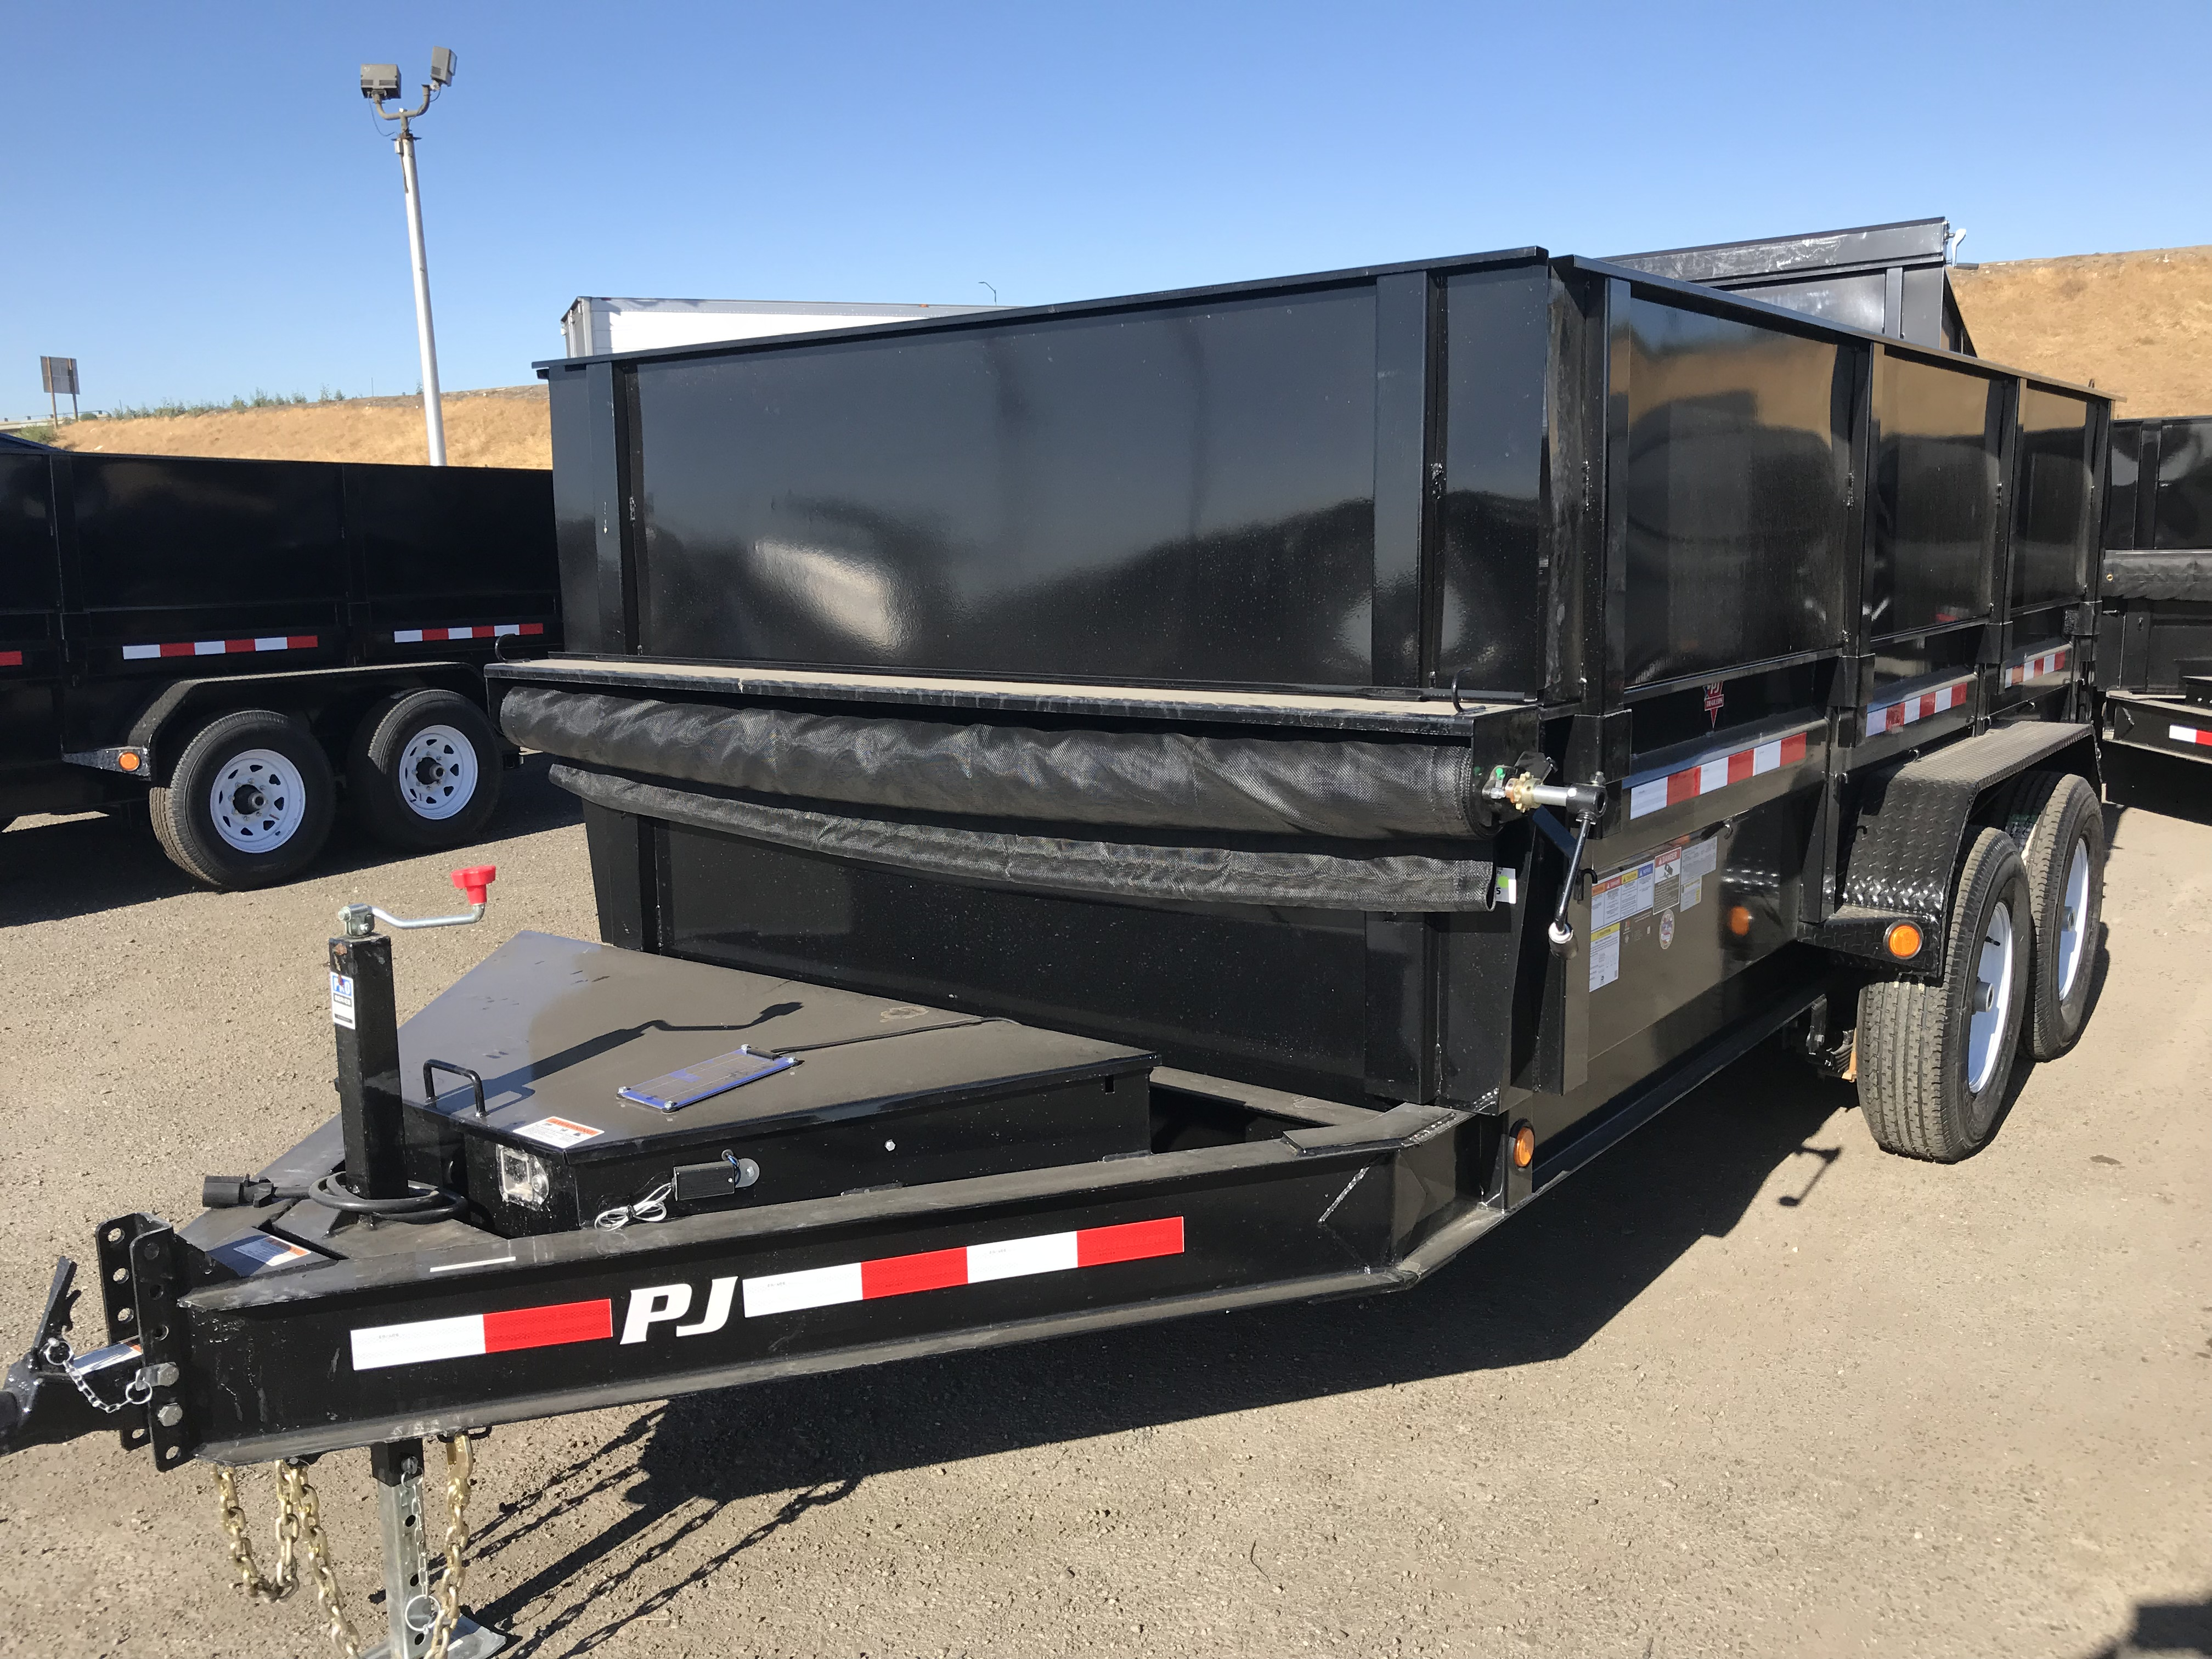 Home Bonander Trailer Sales New And Used Dealer In Wiring Pickup Box Large Selection Of Pj Dump Trailers Stock